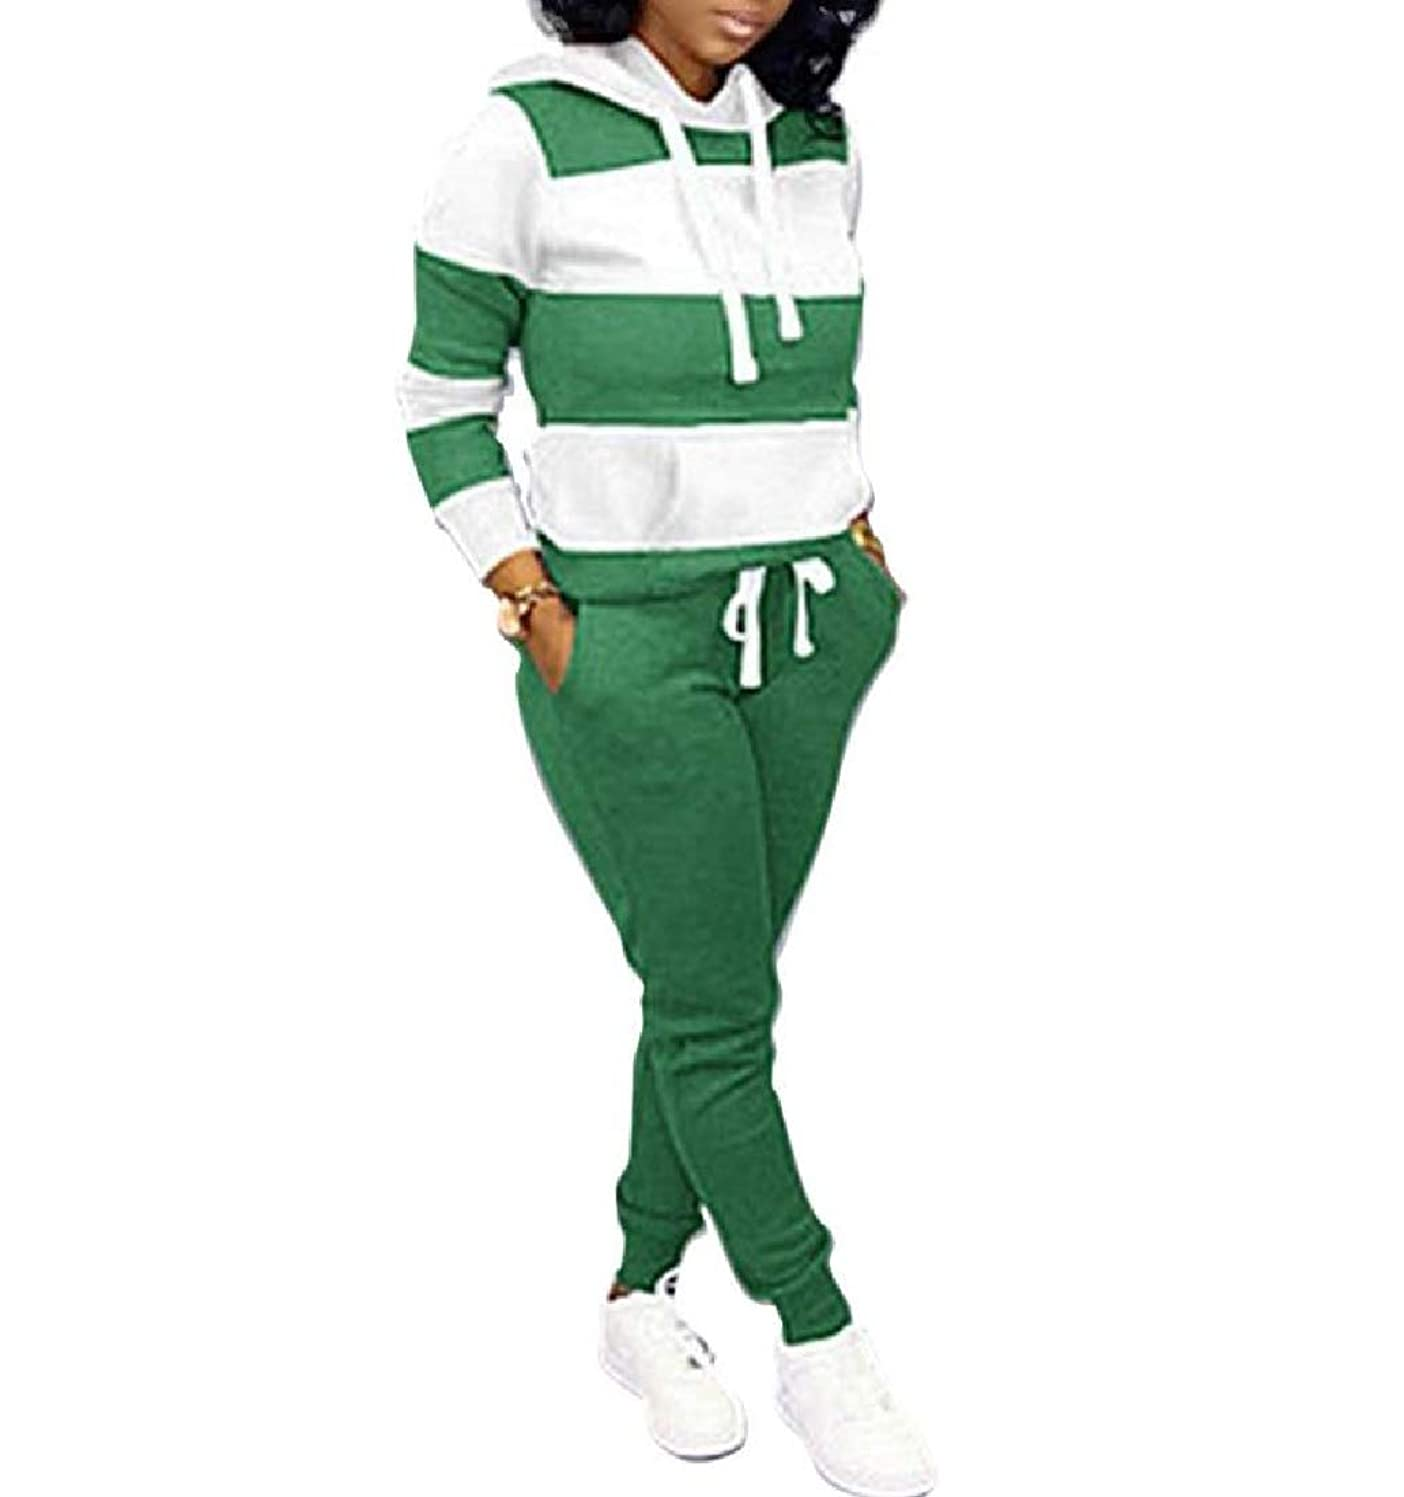 ディプロマ太字エチケットVITryst Women's Stripes 2 Piece Set Hooded Athletic Drawstring Sport Tracksuit